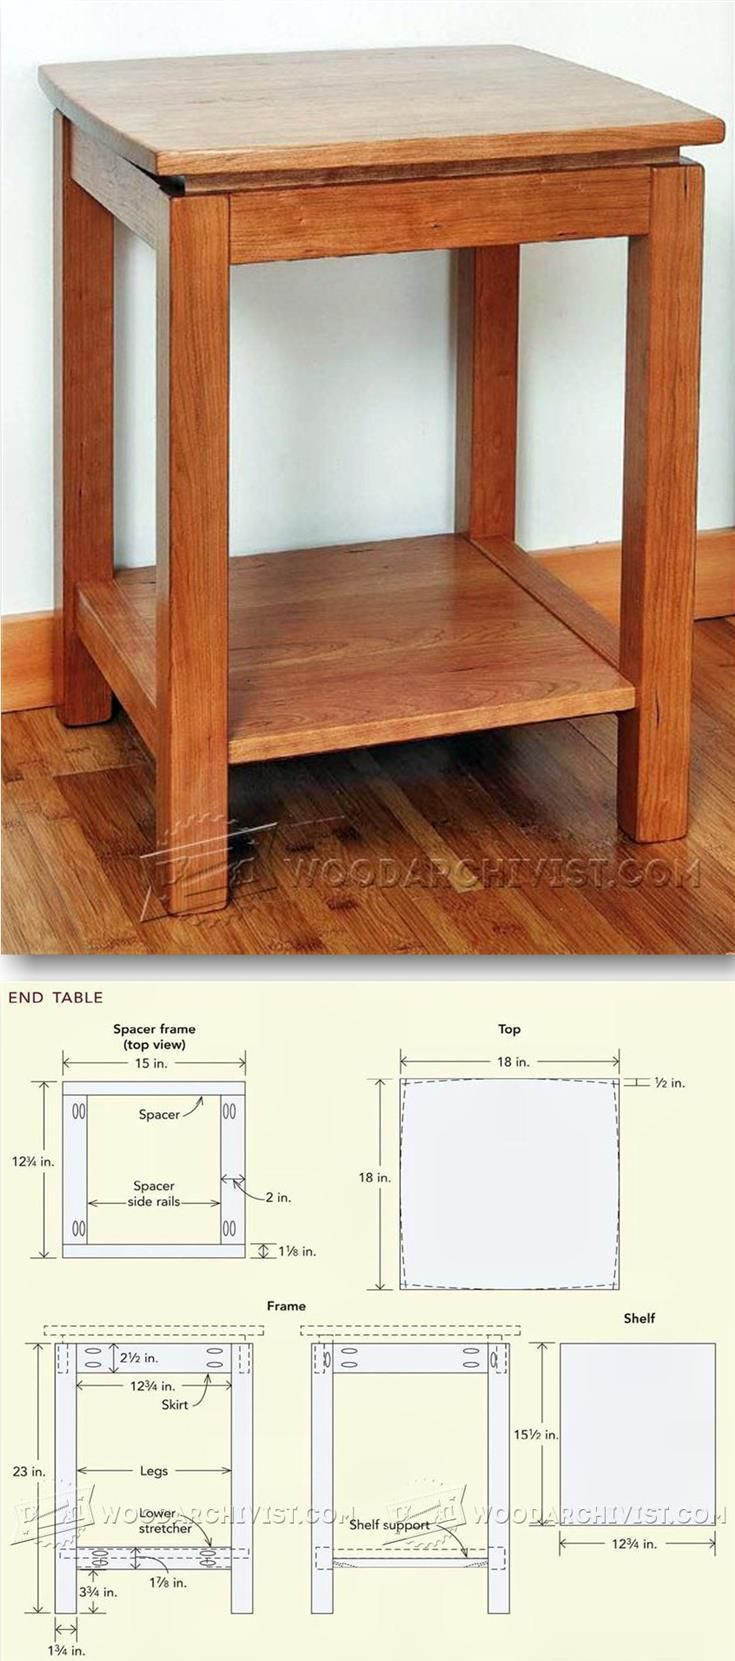 Build End Table   Furniture Plans And Projects | WoodArchivist.com